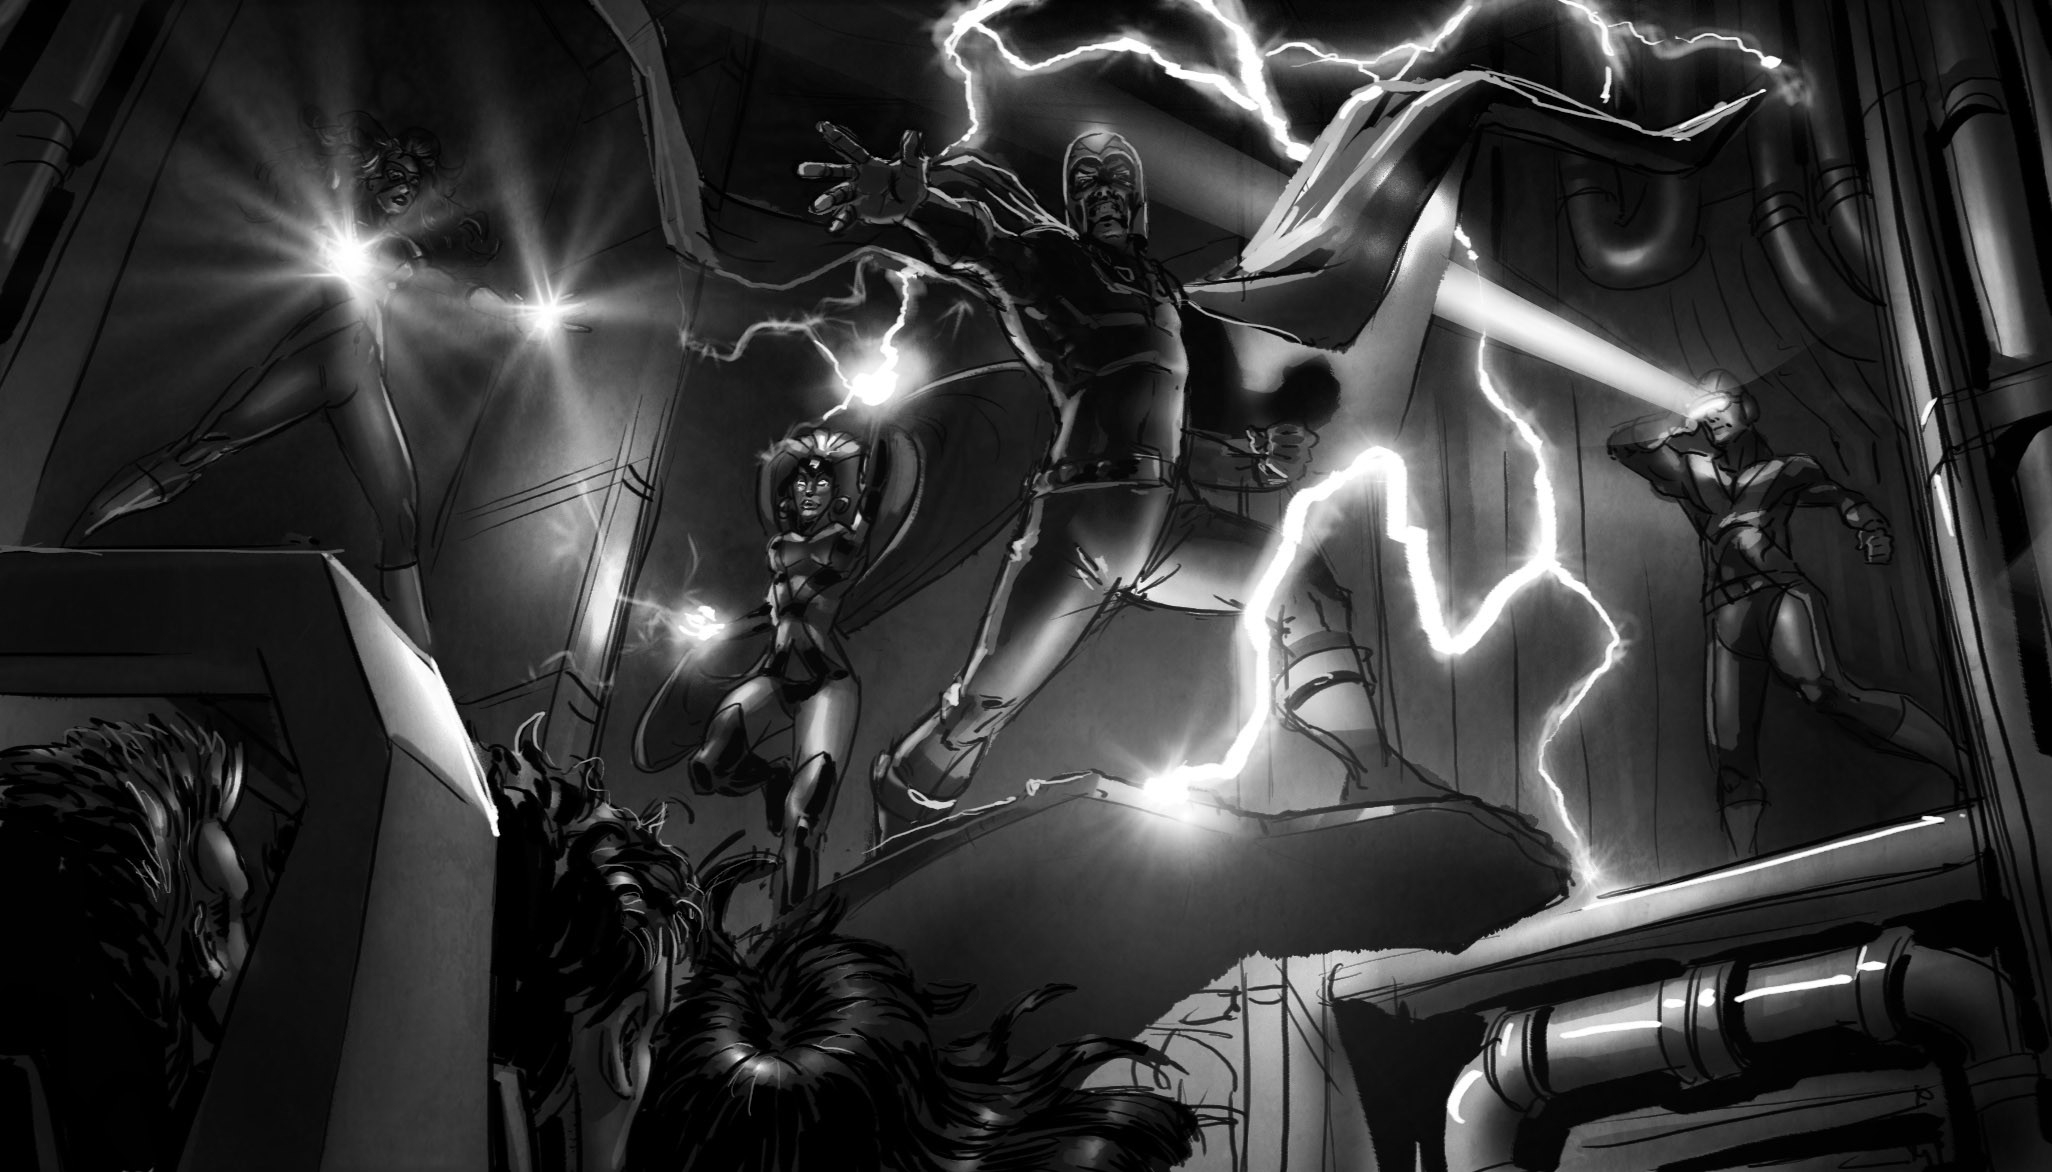 ...Magneto pulls us toward him with his magnetic power! We're almost in his grasp when Storm and Cyclops come to our defense with wind and lightning and focussed eye-beams. Dr. Xavier's telepathic voice urges us to focus our latent powers to assist--